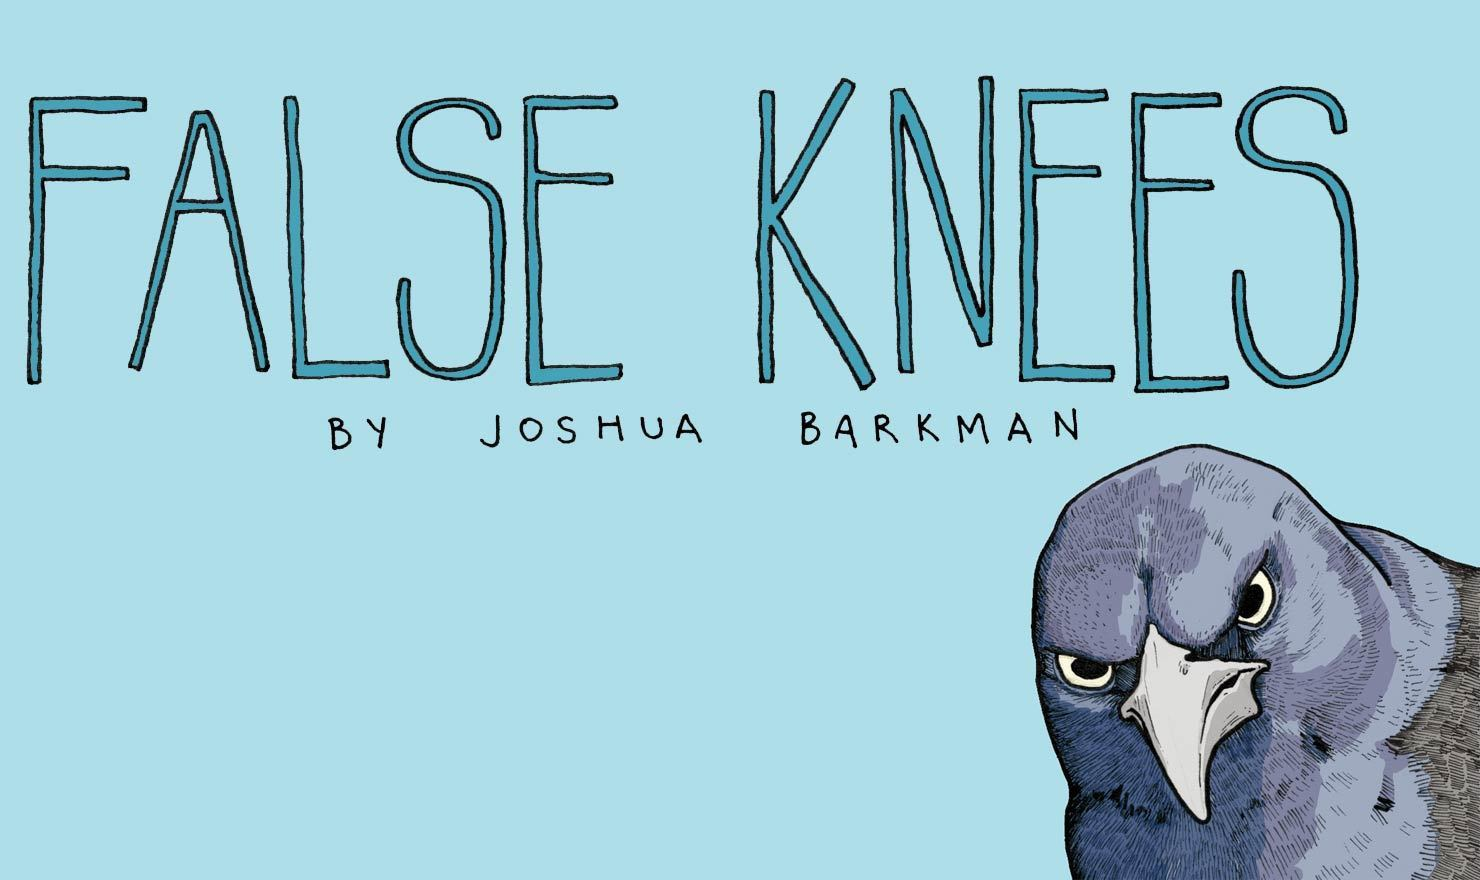 New Comic Alert: 'False Knees' By Joshua Barkman